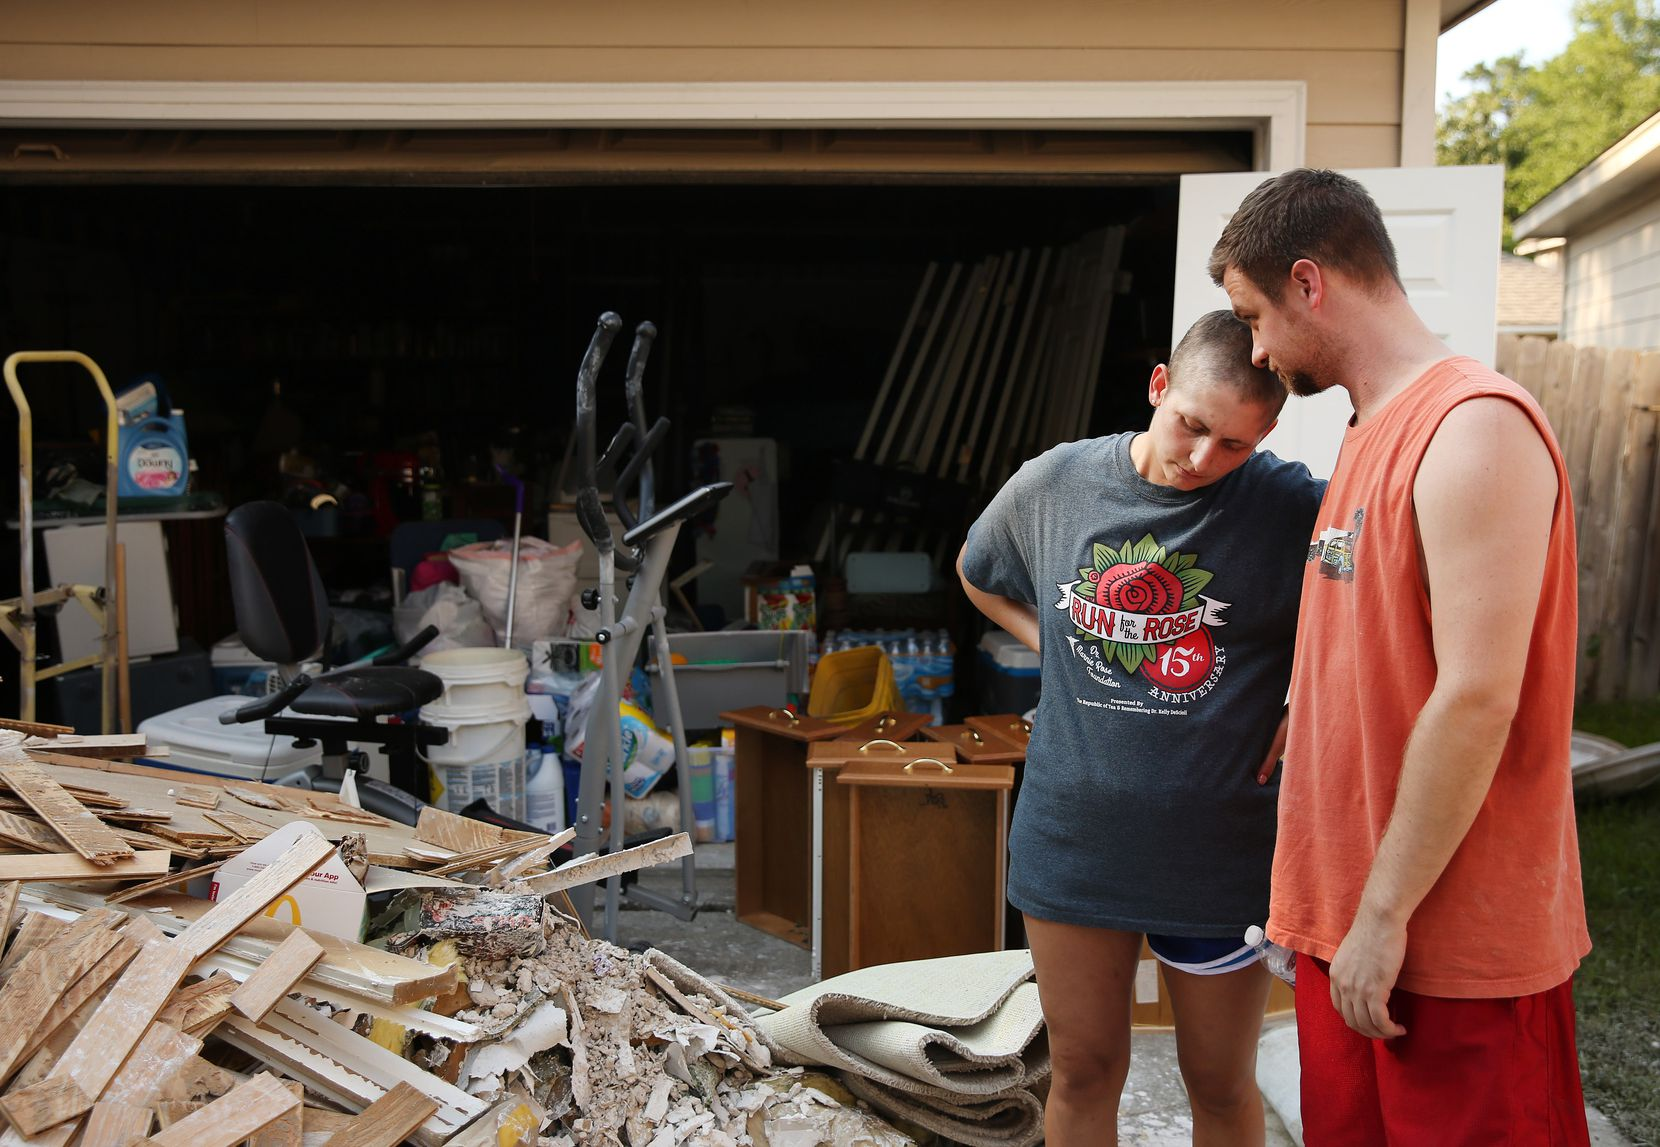 Josh and Sarah Dill were at home when they had to evacuate when flood waters entered their home with their two children, Brian, 4, and Rebekah, 2, and into an inflatable boat. When Josh tried to close the front door on the way out the door slammed on his hand and broke it. After finding a job in January 2017 after a stint of unemployment, the family found out the Sarah had breast cancer in February of 2017. Sarah has had a mastectomy and a chemotherapy treatment, and had to get a radiation treatment on the day recovery efforts were taking place in her house. Following flooding caused by Harvey they are gutting their home of damaged items and sheetrock.